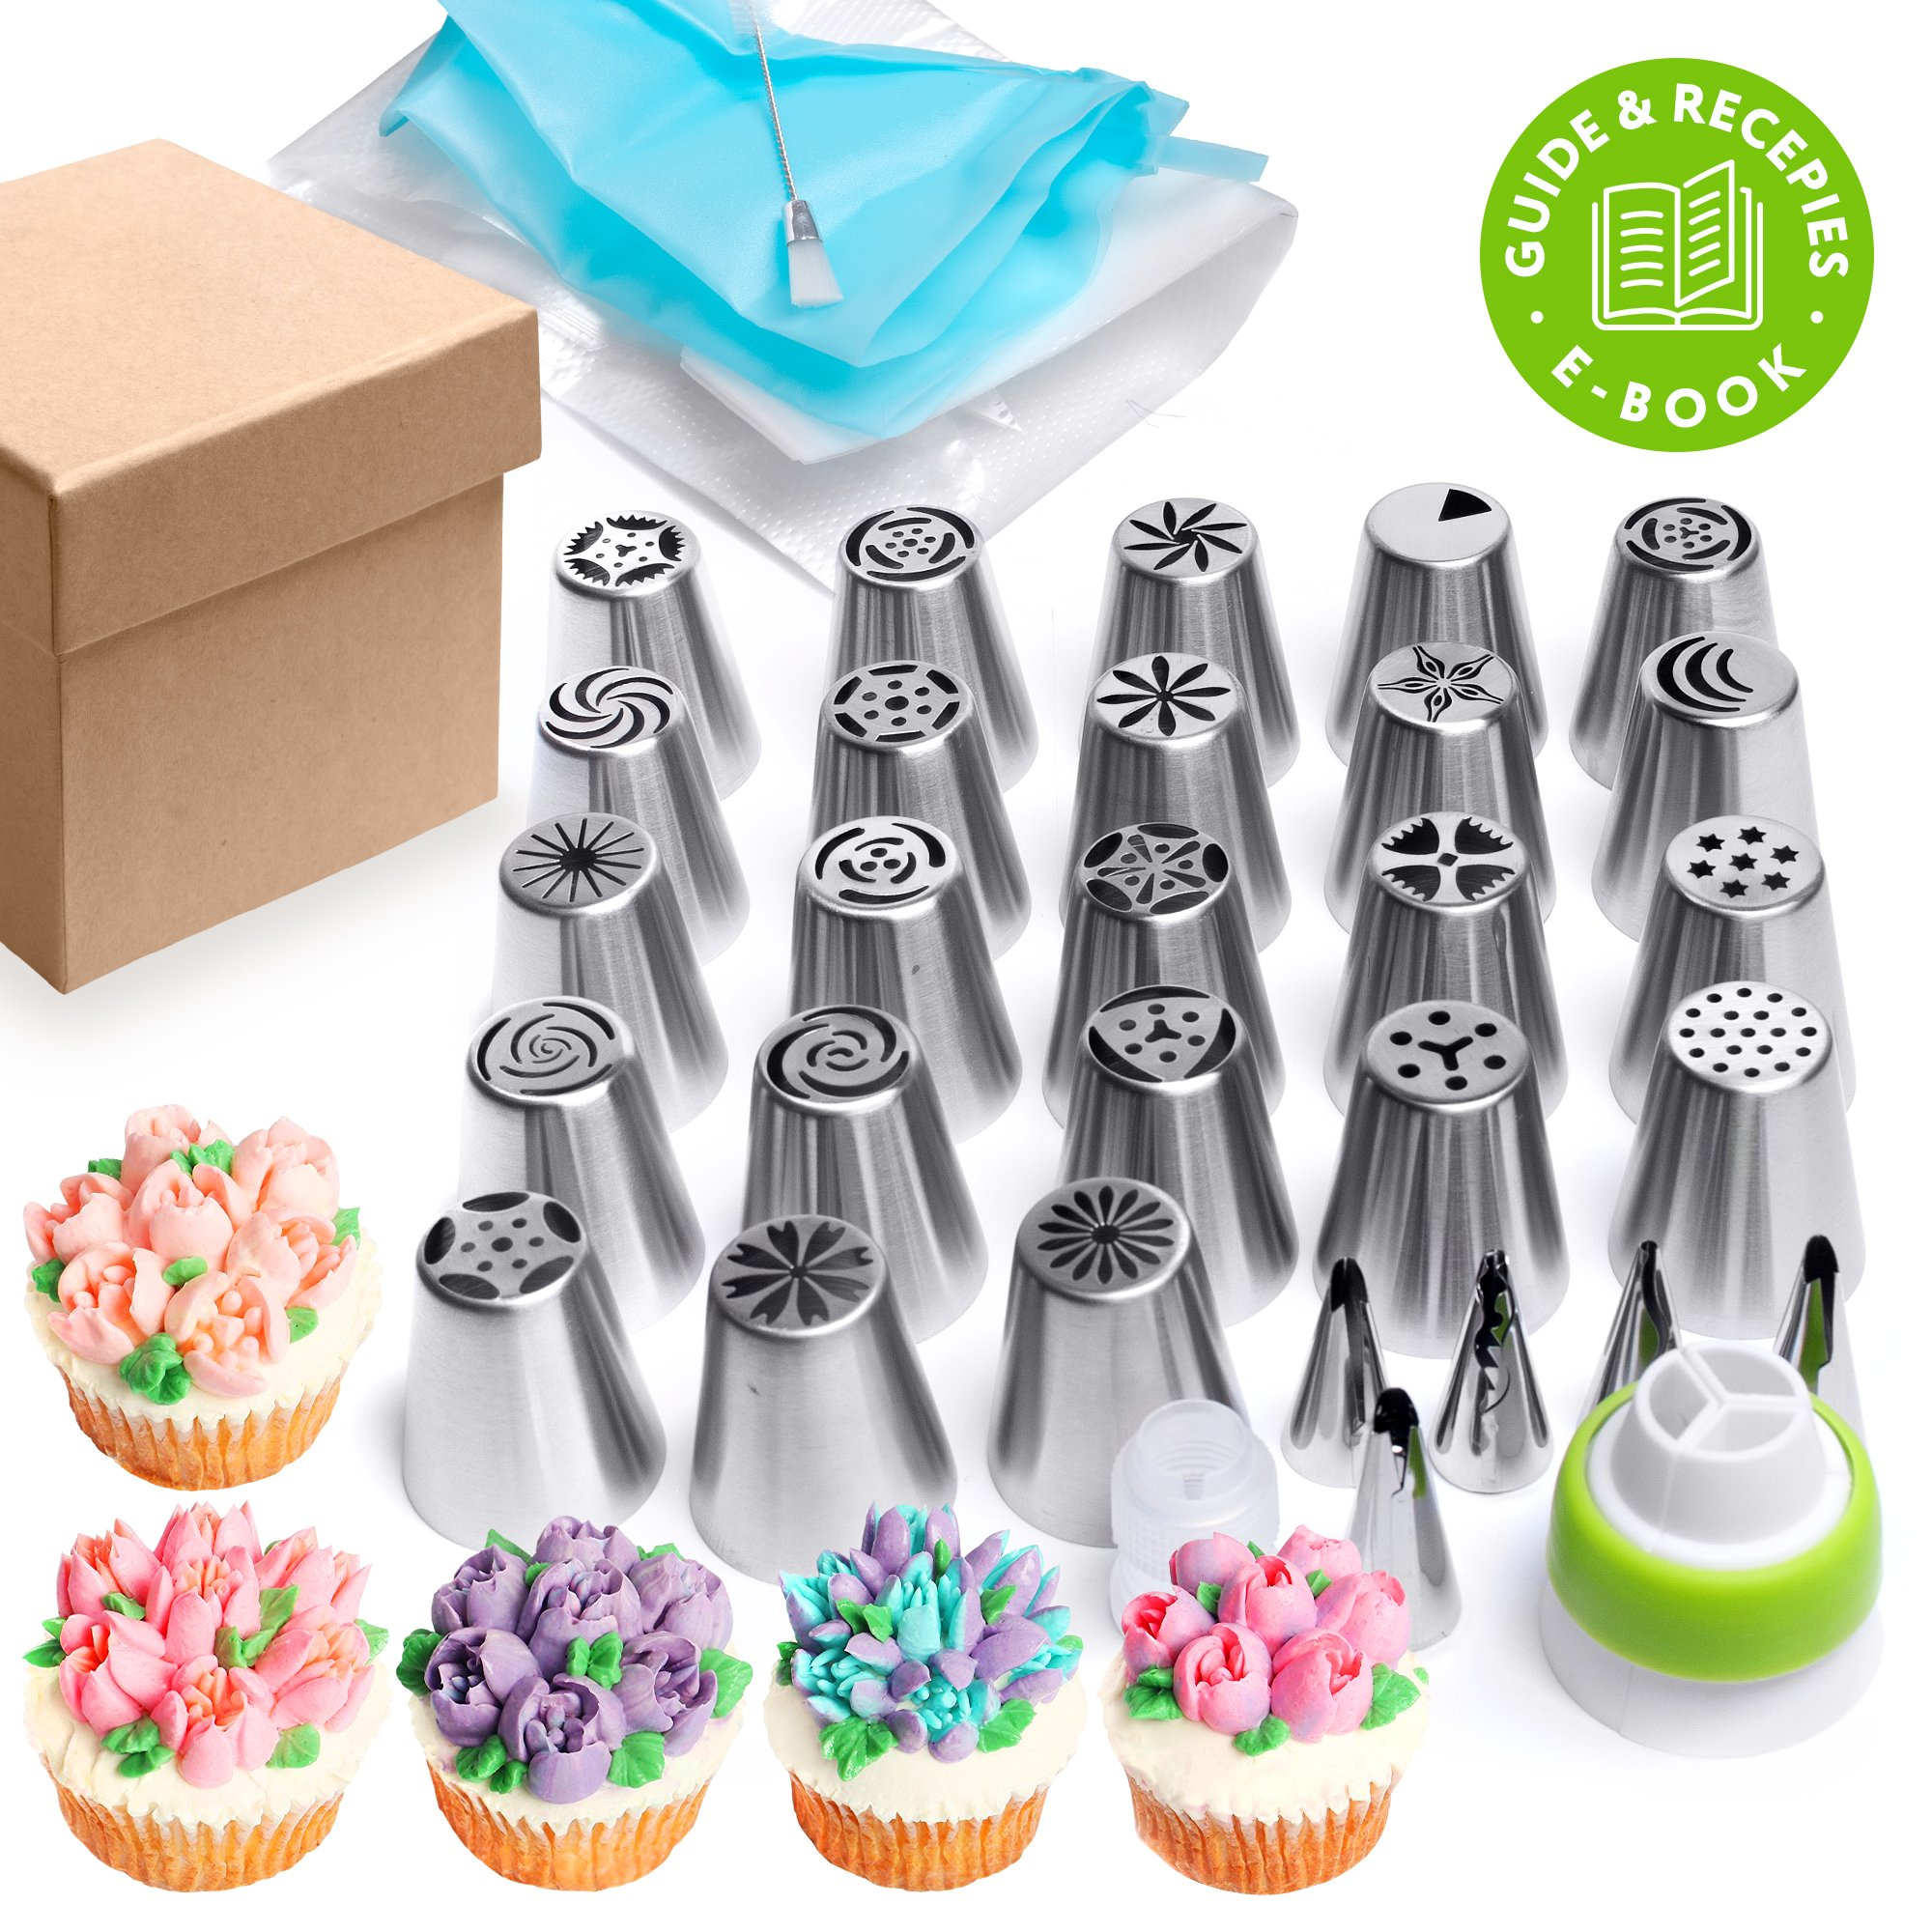 Russian piping tips Set 44 pcs - Cakes decorating supplies - Cupcake decorating - 20 Icing nozzles - 5 Ruffle piping tips - 15 Pastry disposable bags - 2 Couplers + brush